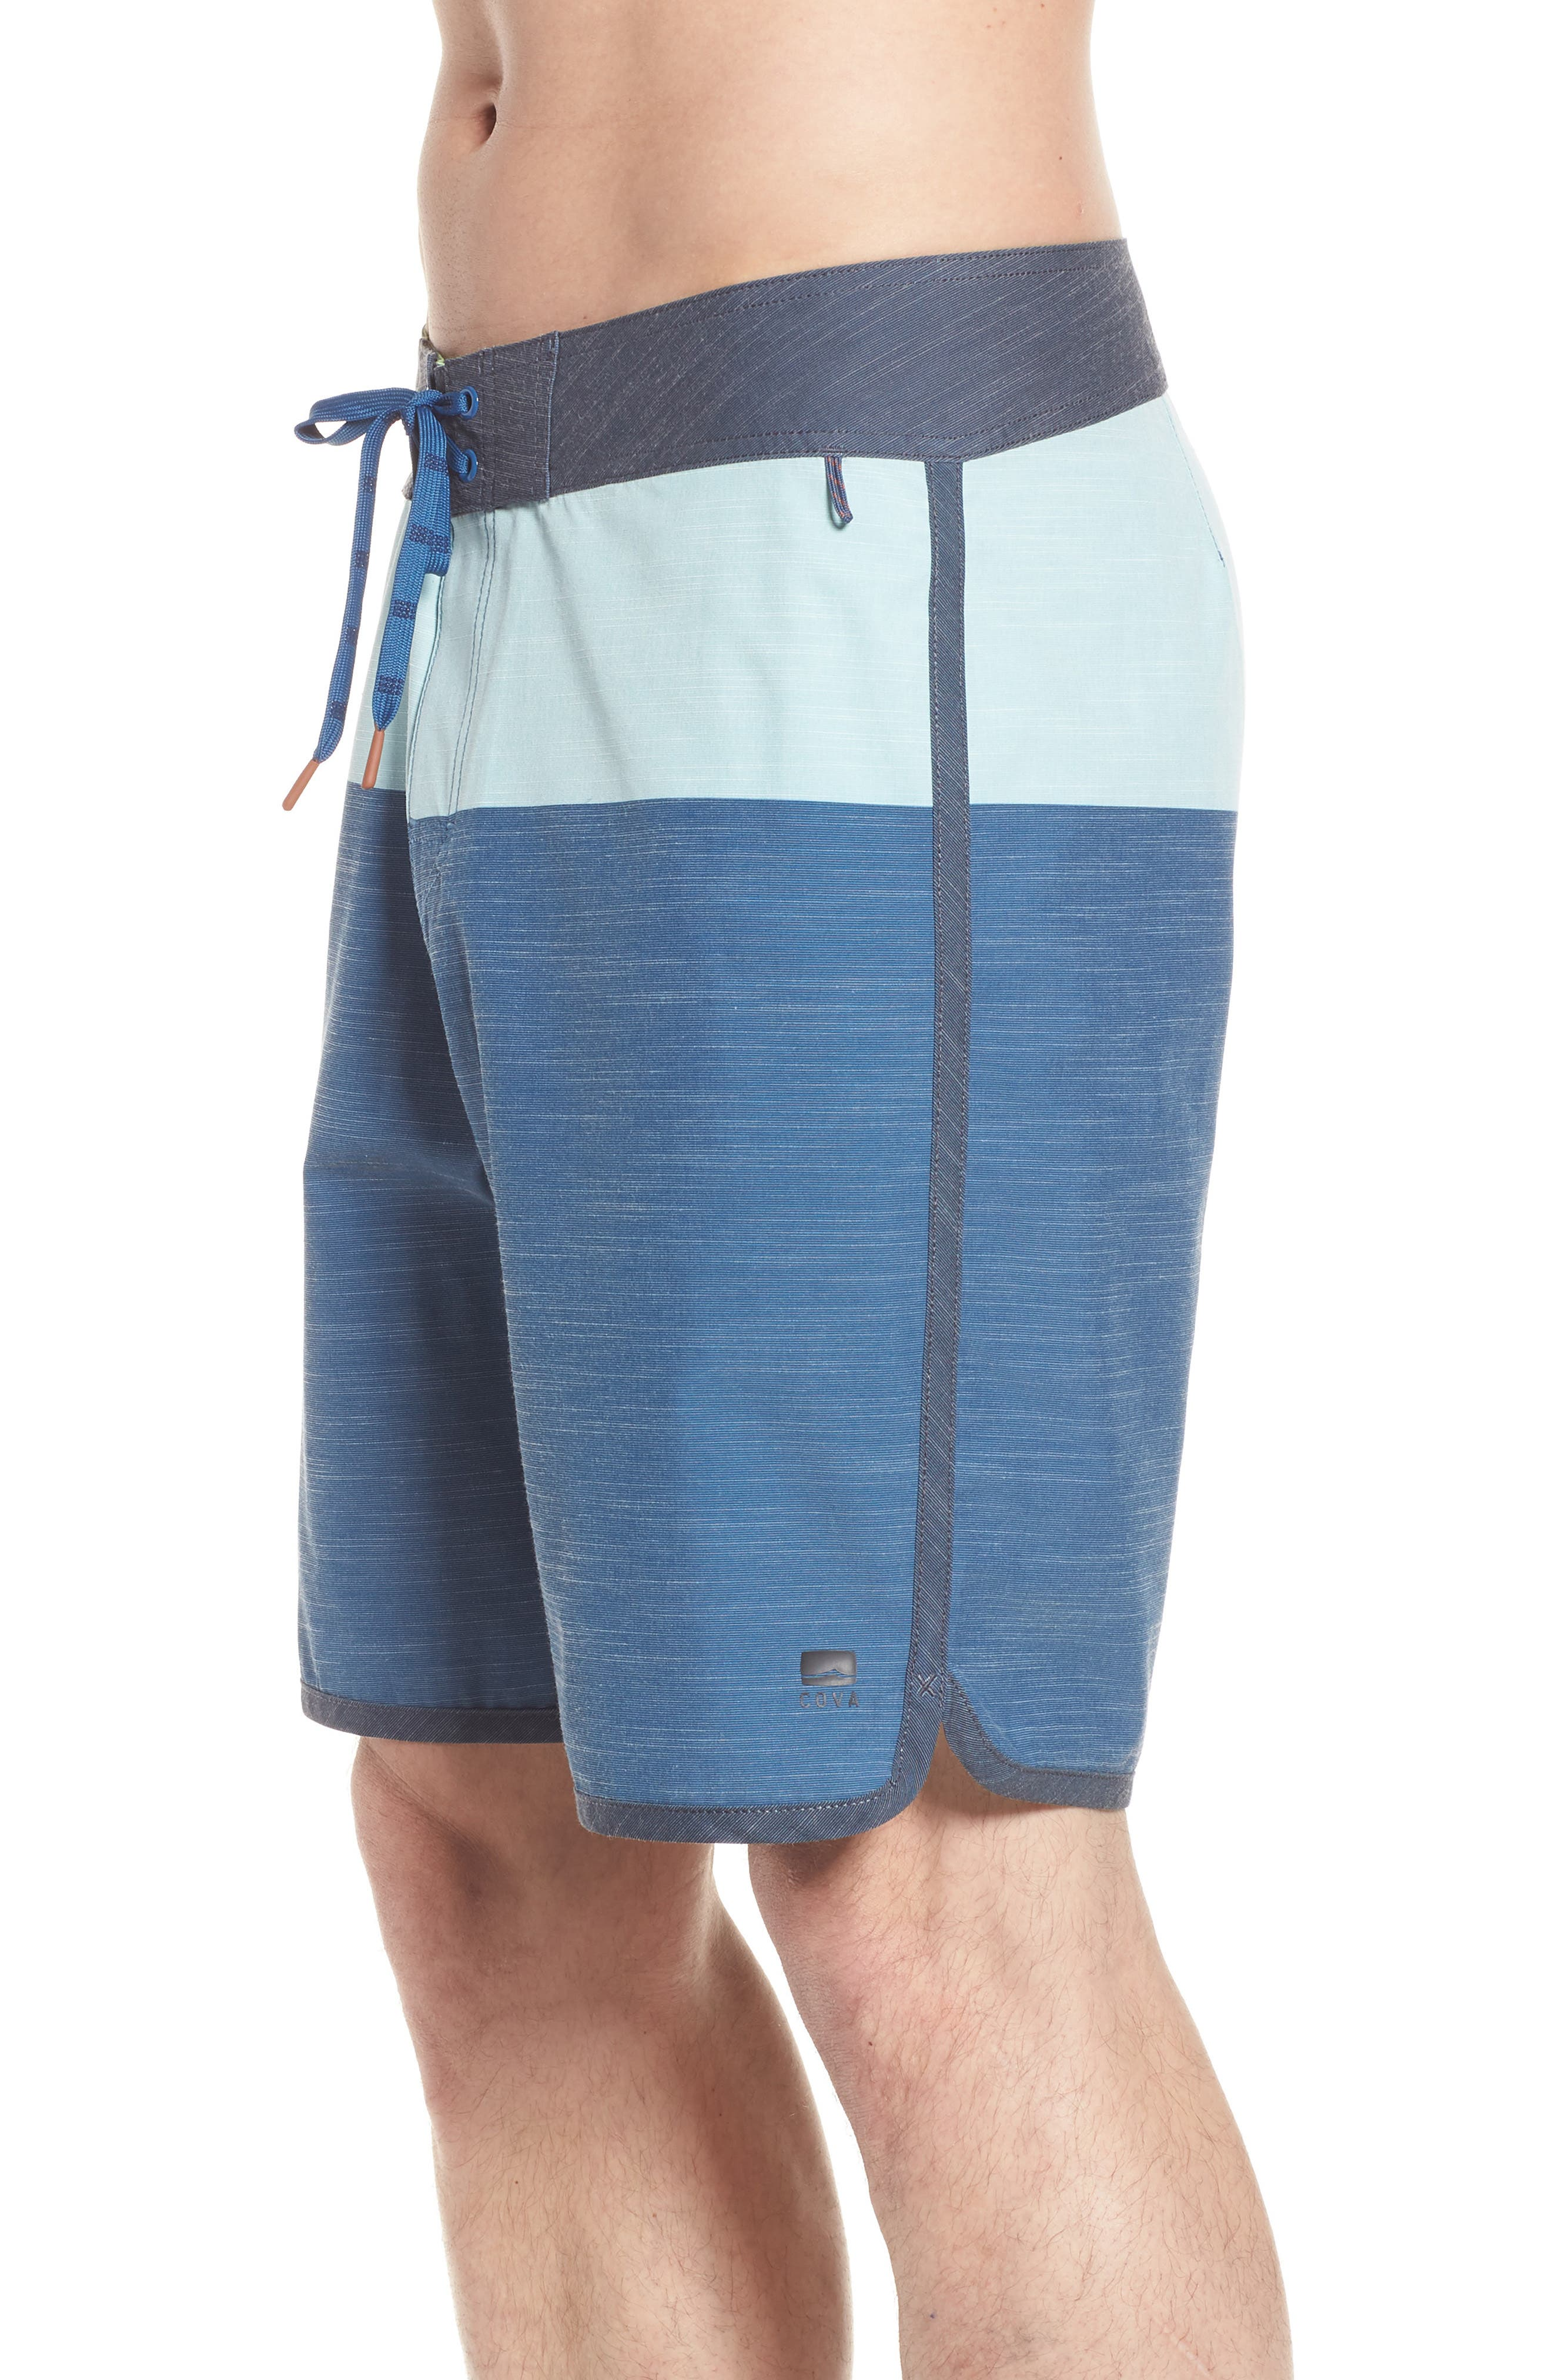 Beachcomber Board Shorts,                             Alternate thumbnail 4, color,                             423